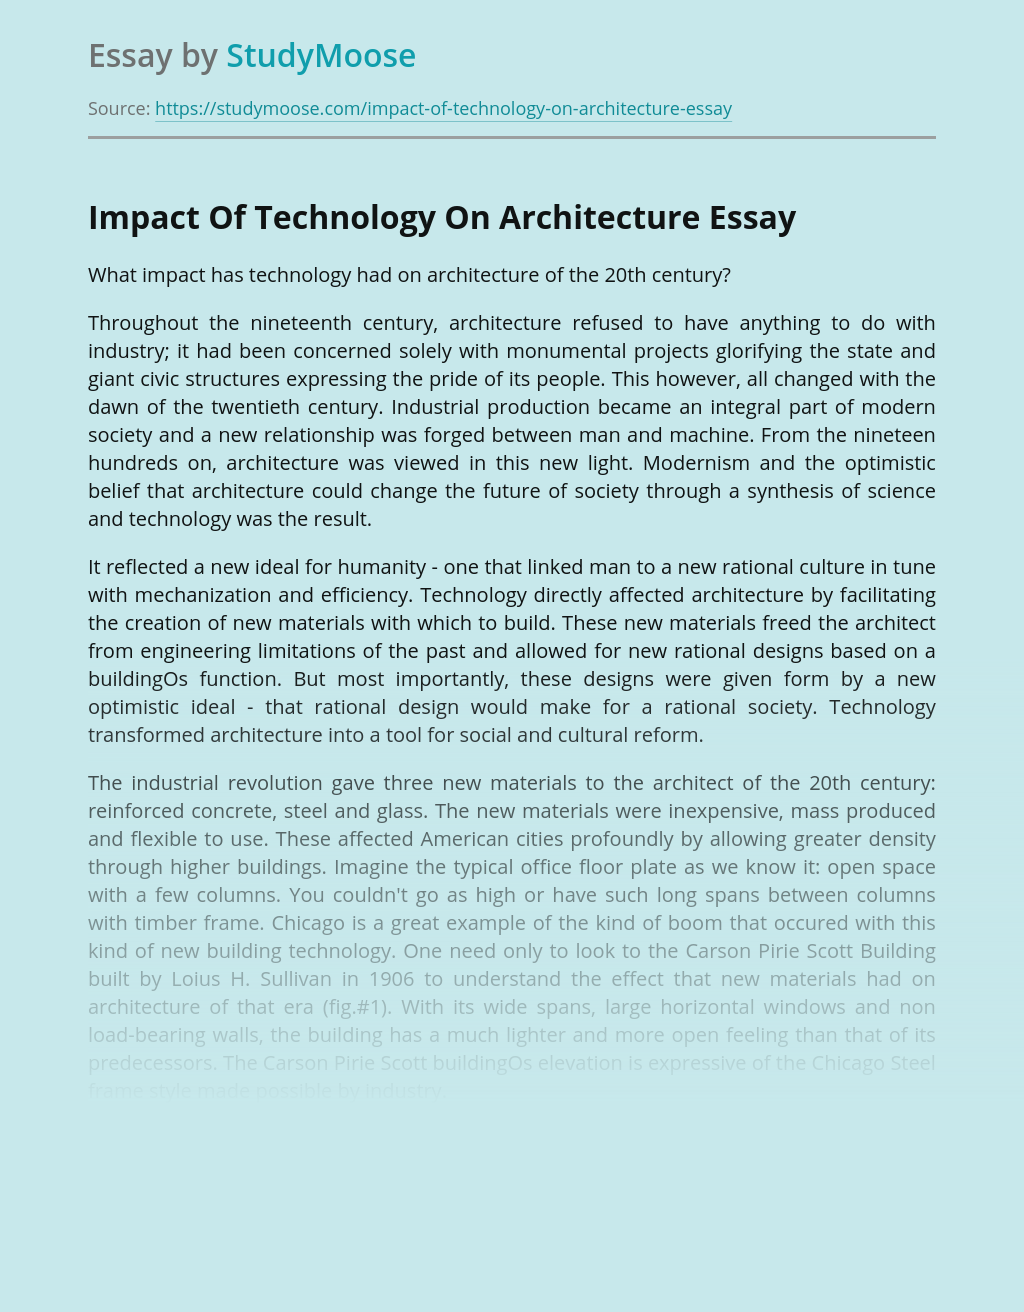 Impact Of Technology On Architecture